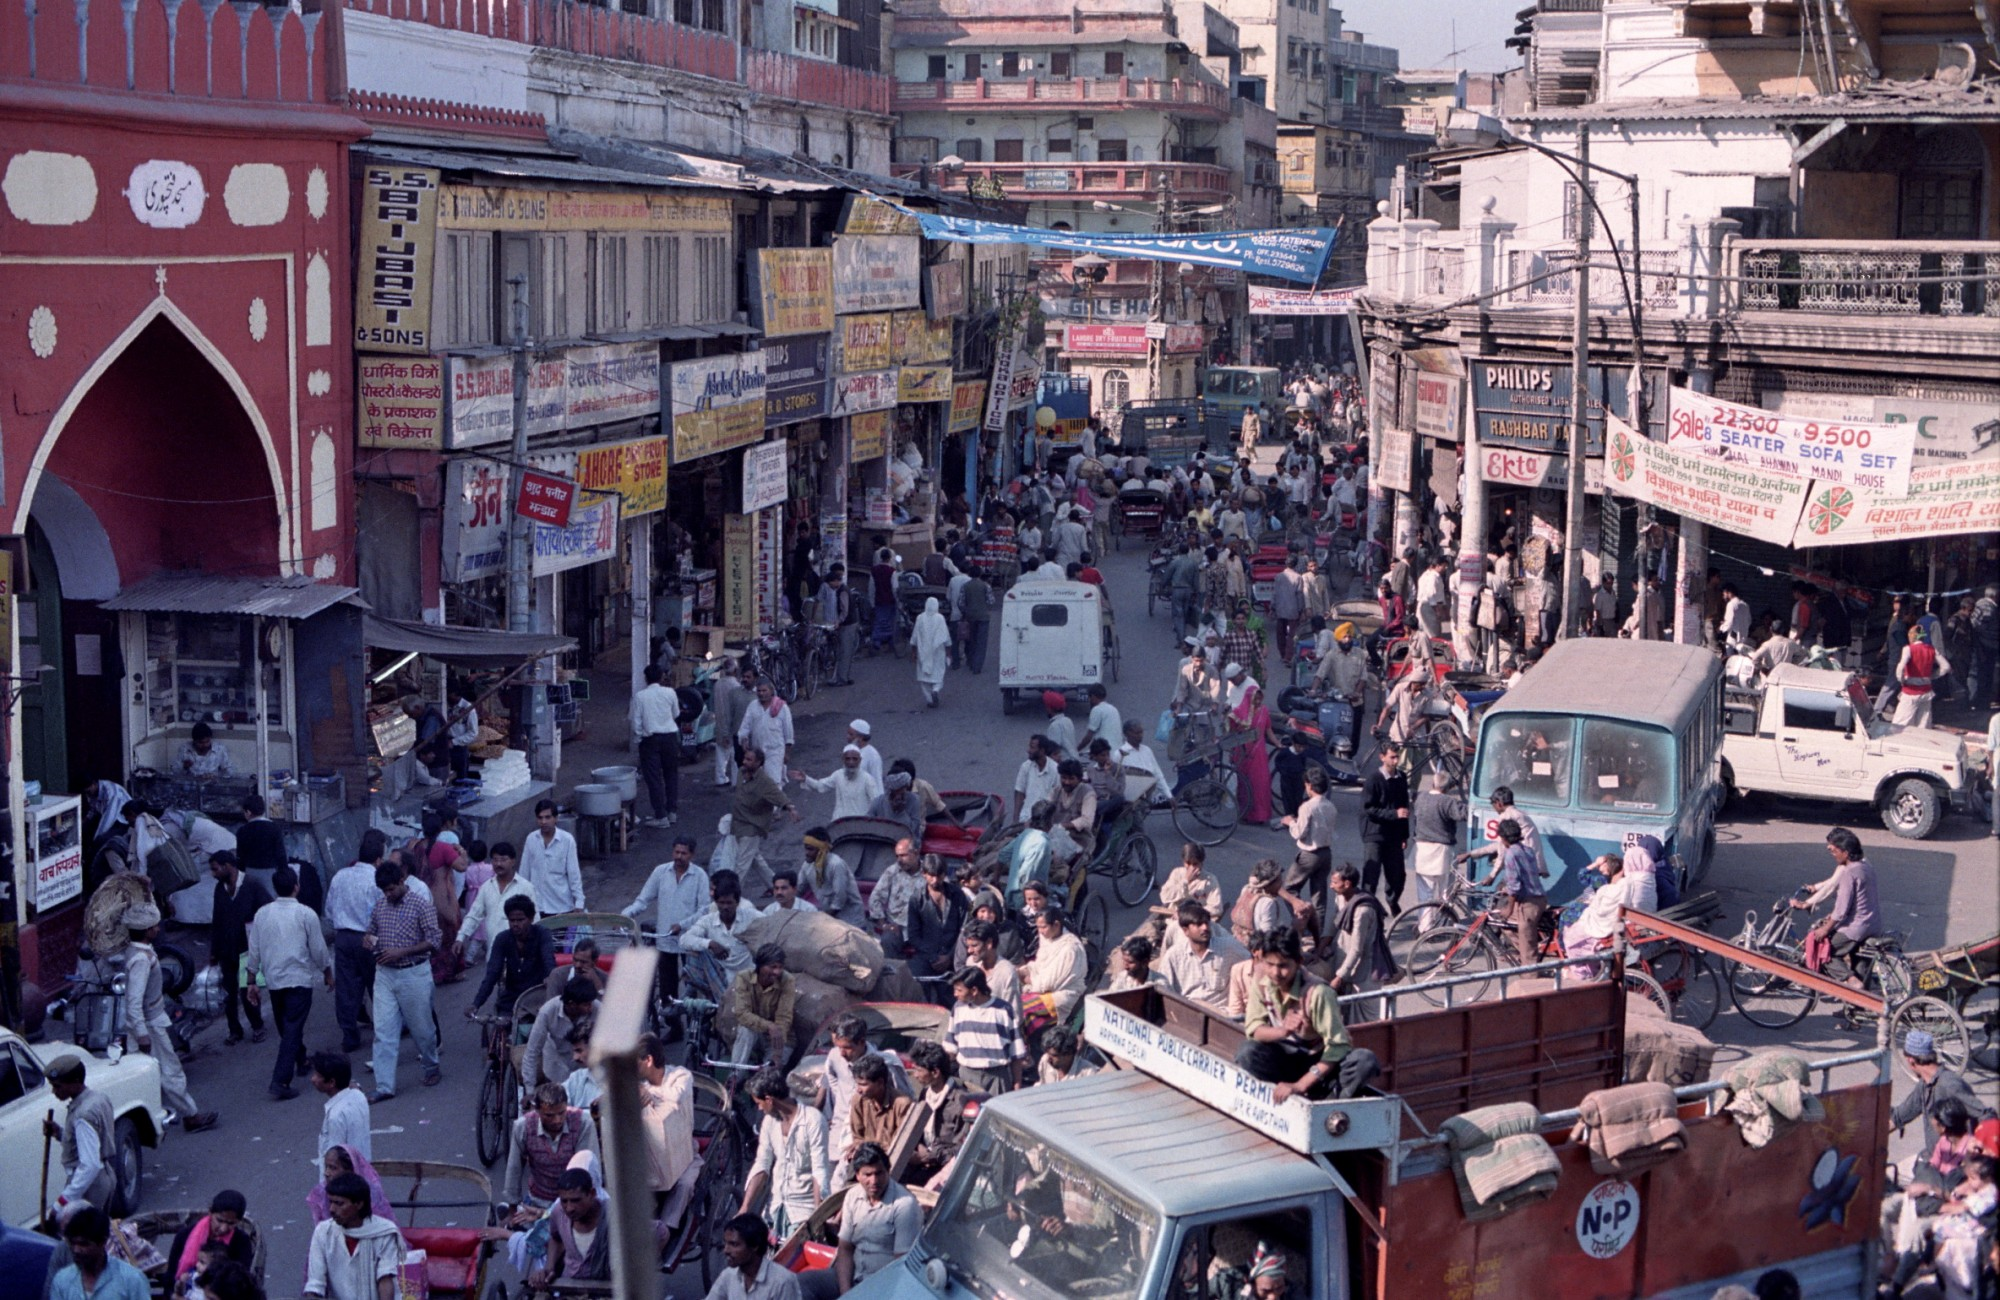 1994 Dheli (Old) Chandni Chowk Street near entrance to Fateh Puri mosque